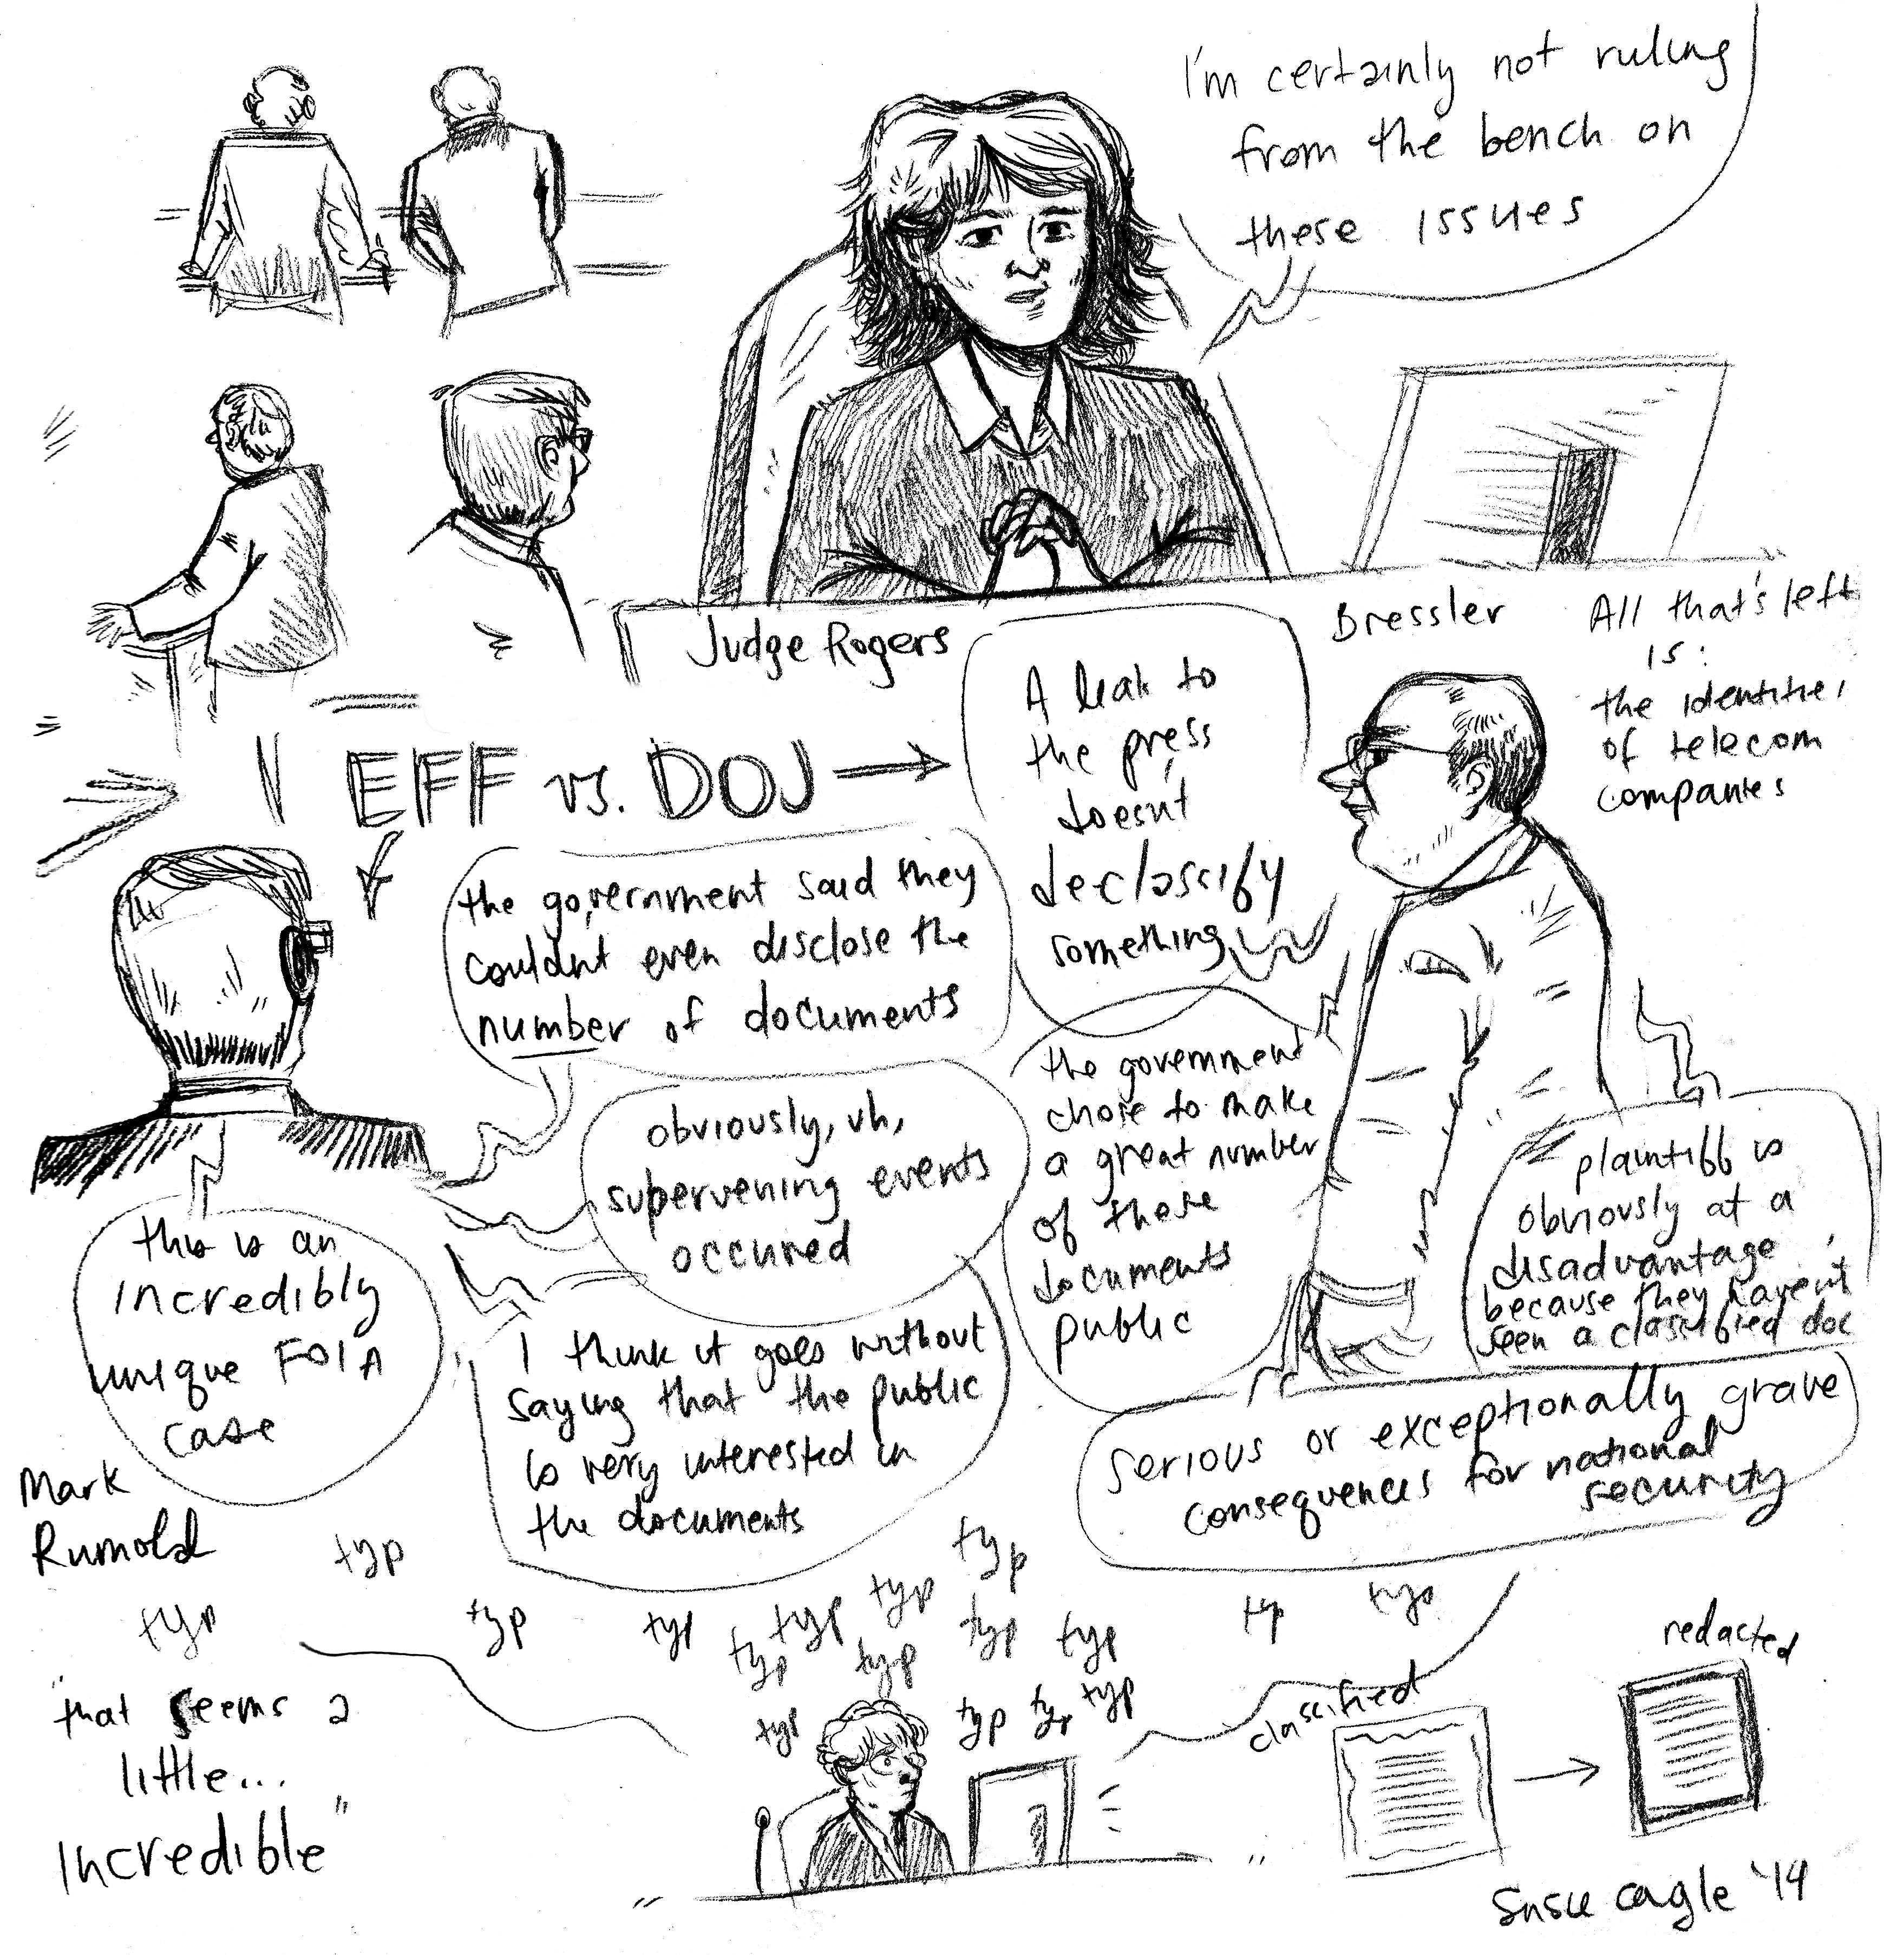 Local journalist and artist Susie Cagle drew this sketch at the June 3, 2014 EFF v. DOJ hearing in Oakland.